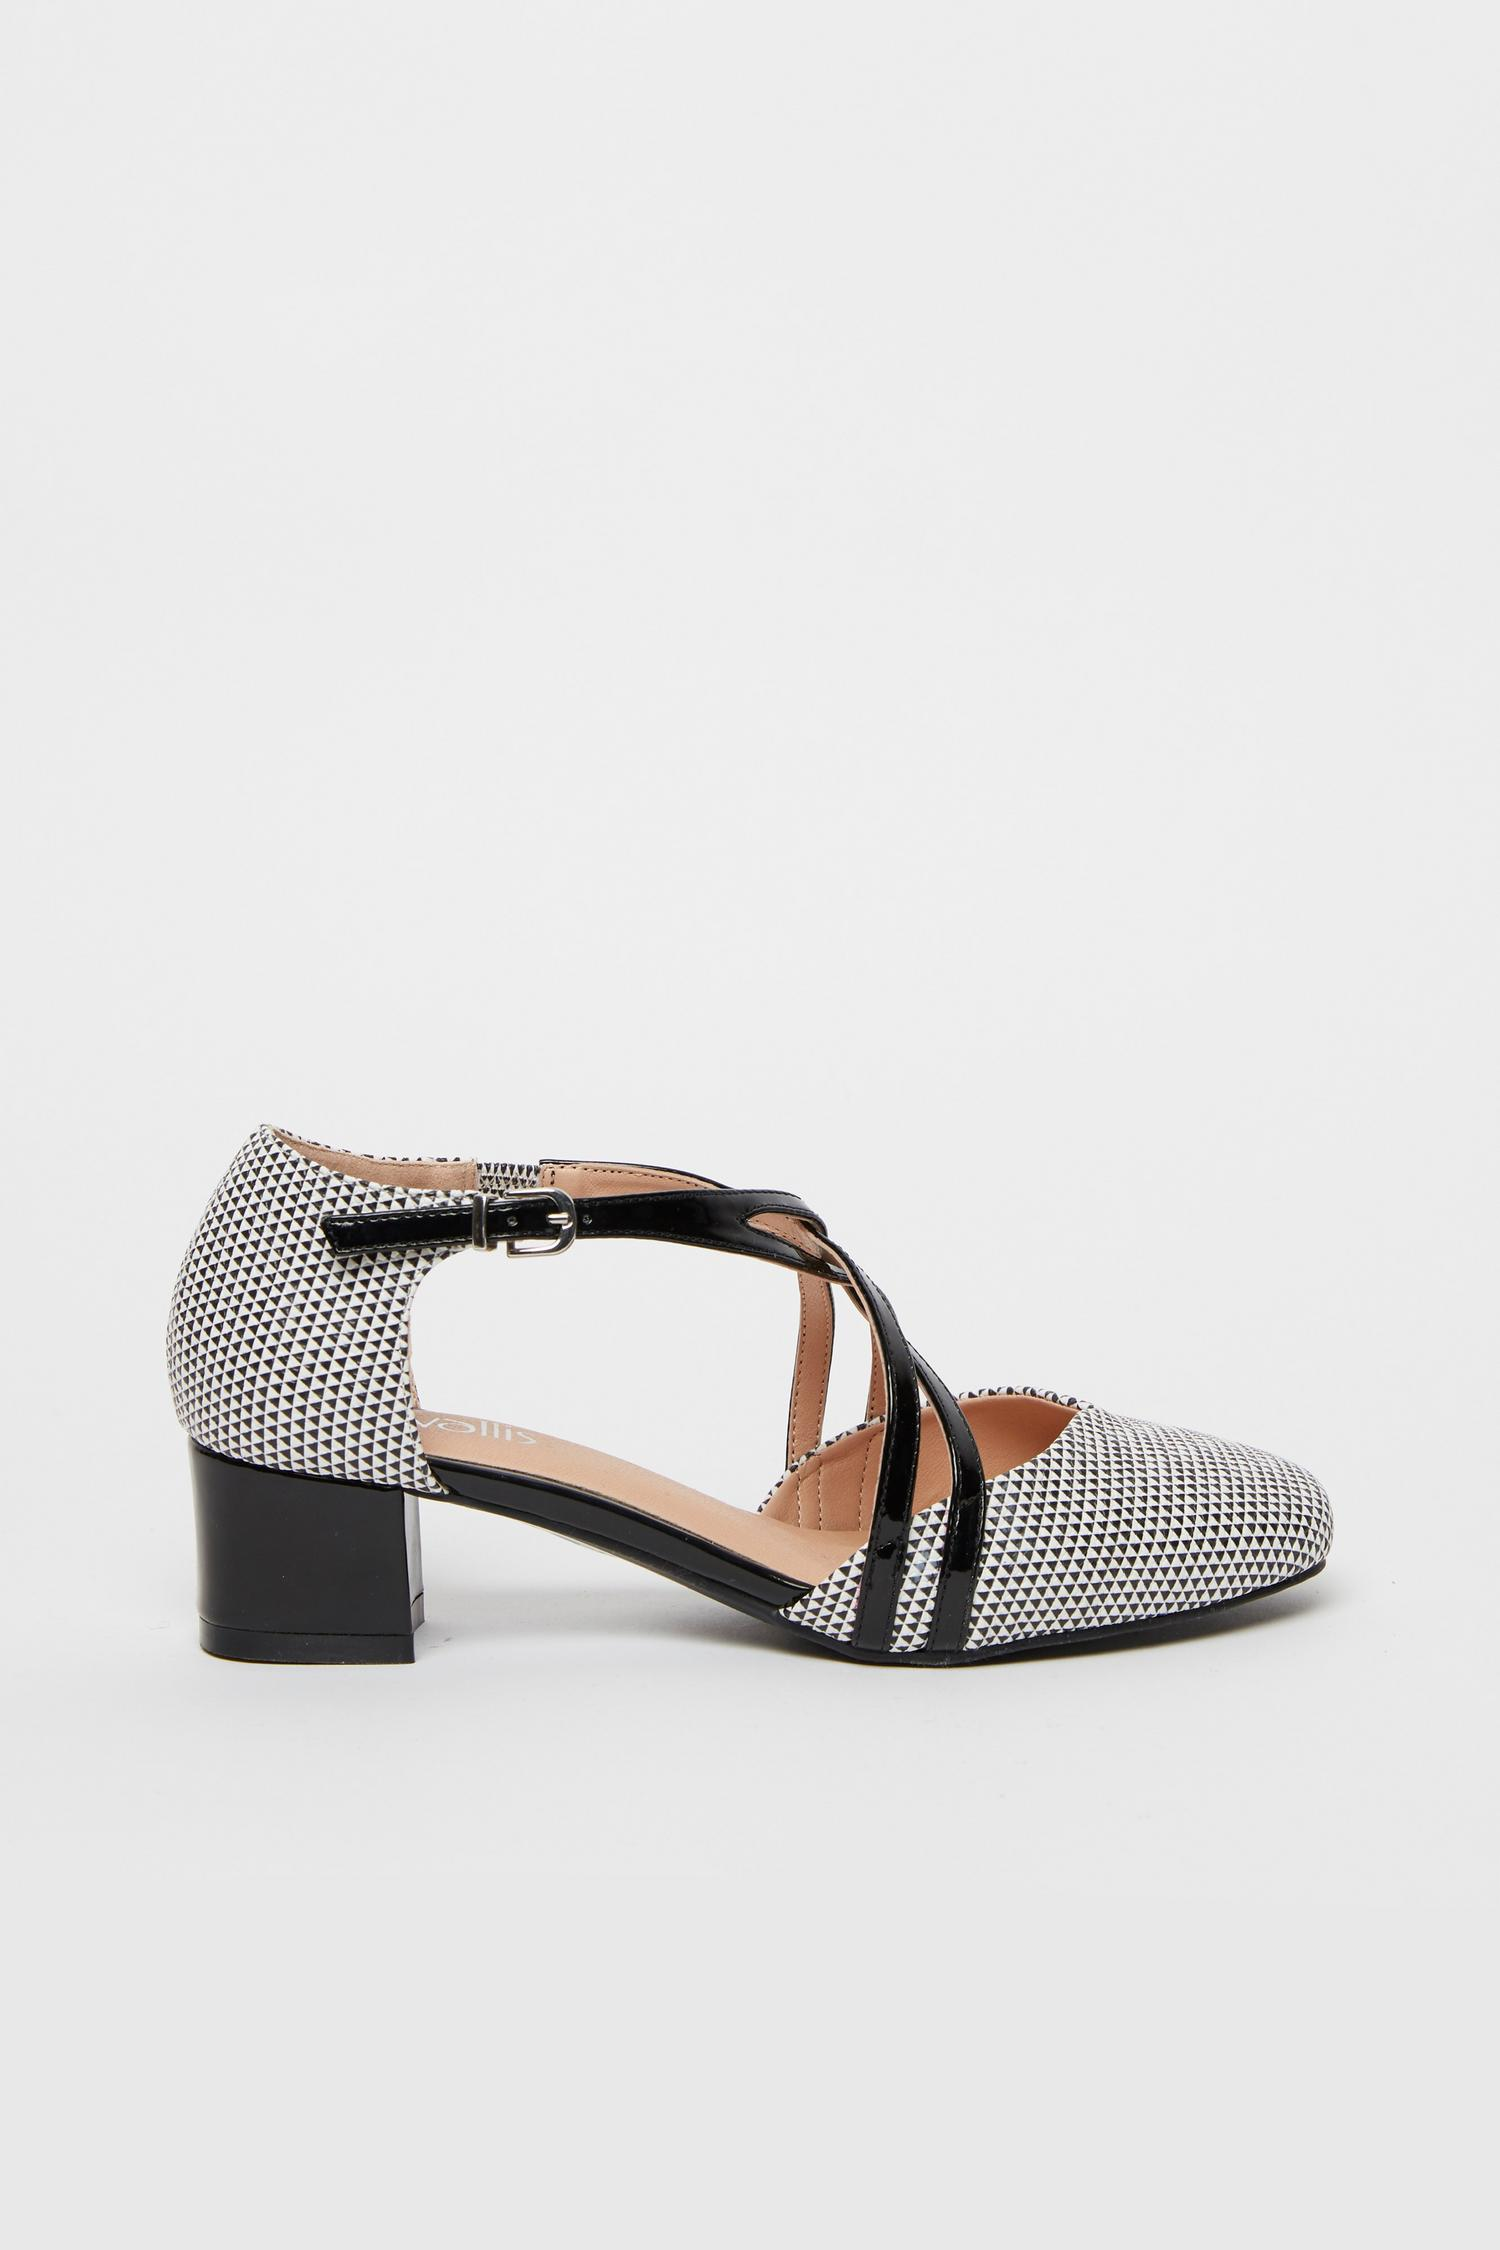 585 Monochrome Cross Strap Block Heel image number 2